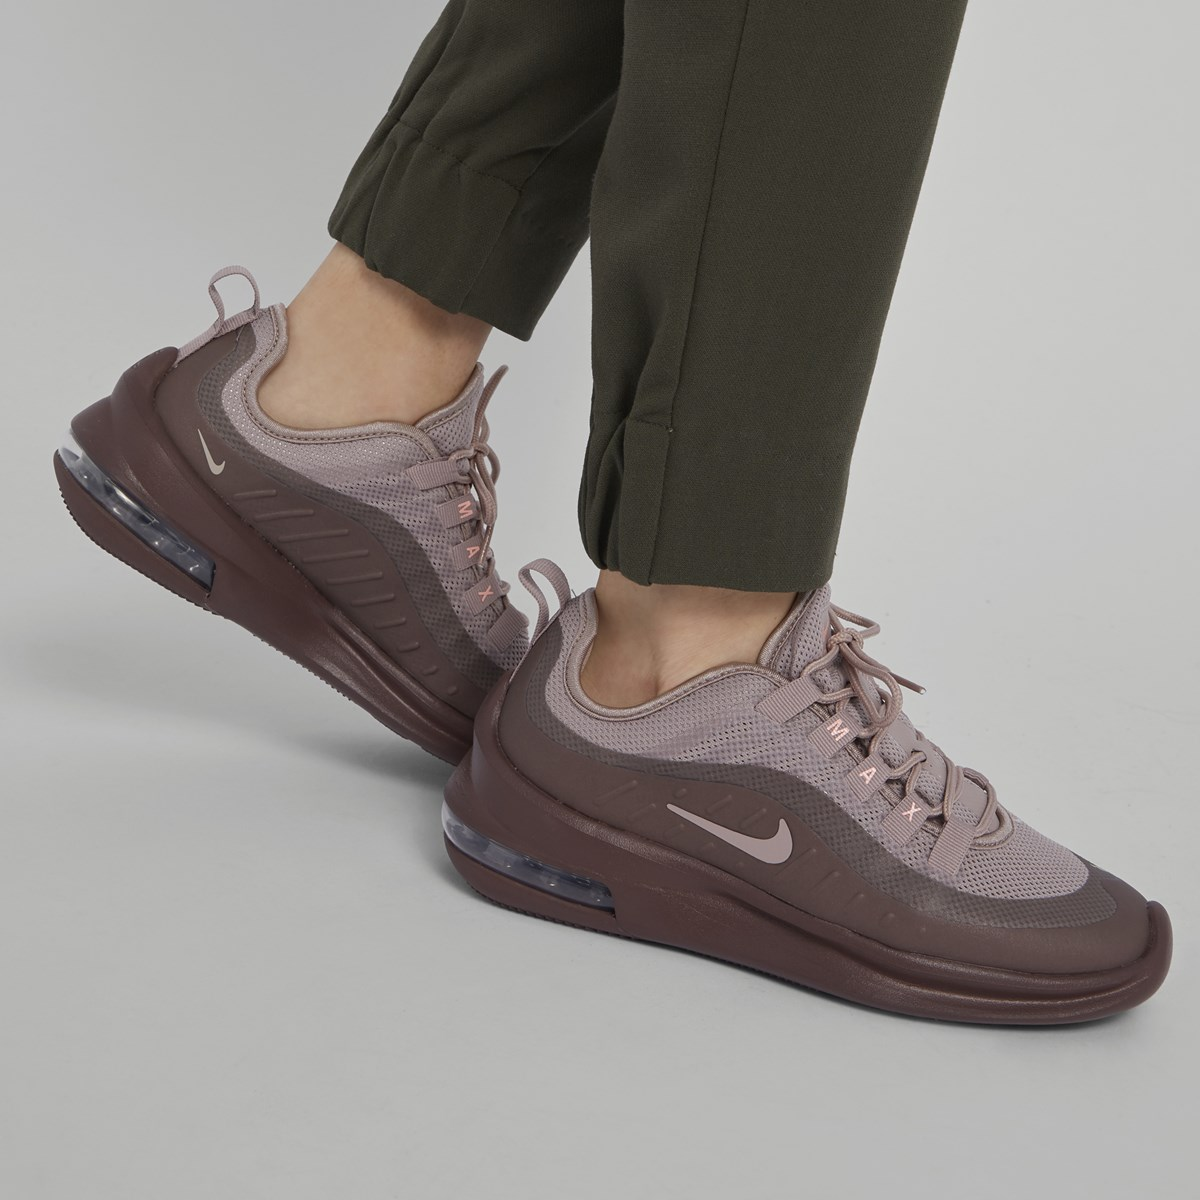 newest collection 7d458 651a5 Women s Air Max Axis Sneakers in Taupe. Previous. default view